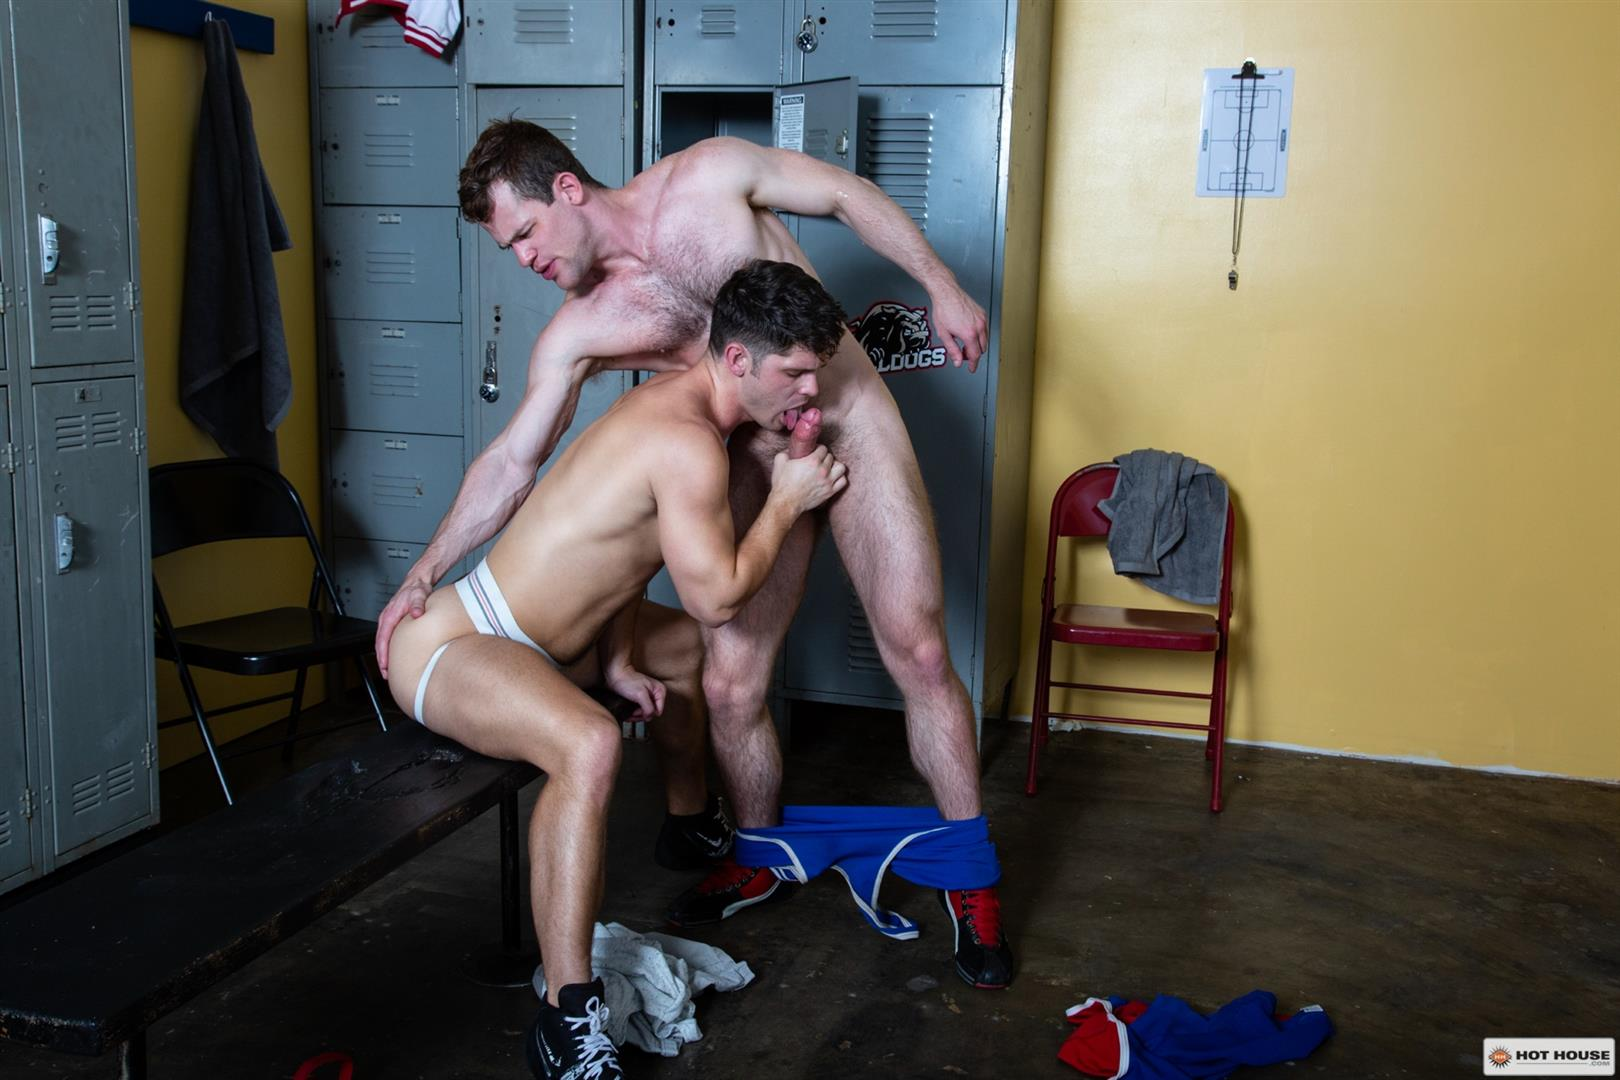 Hot-House-Kurtis-Wolfe-and-Devin-Franco-Muscle-Hunk-Bareback-Sex-In-Gym-11 Devin Franco Gets His Hairy Ass Bred By Hairy Muscle Stud Kurtis Wolfe